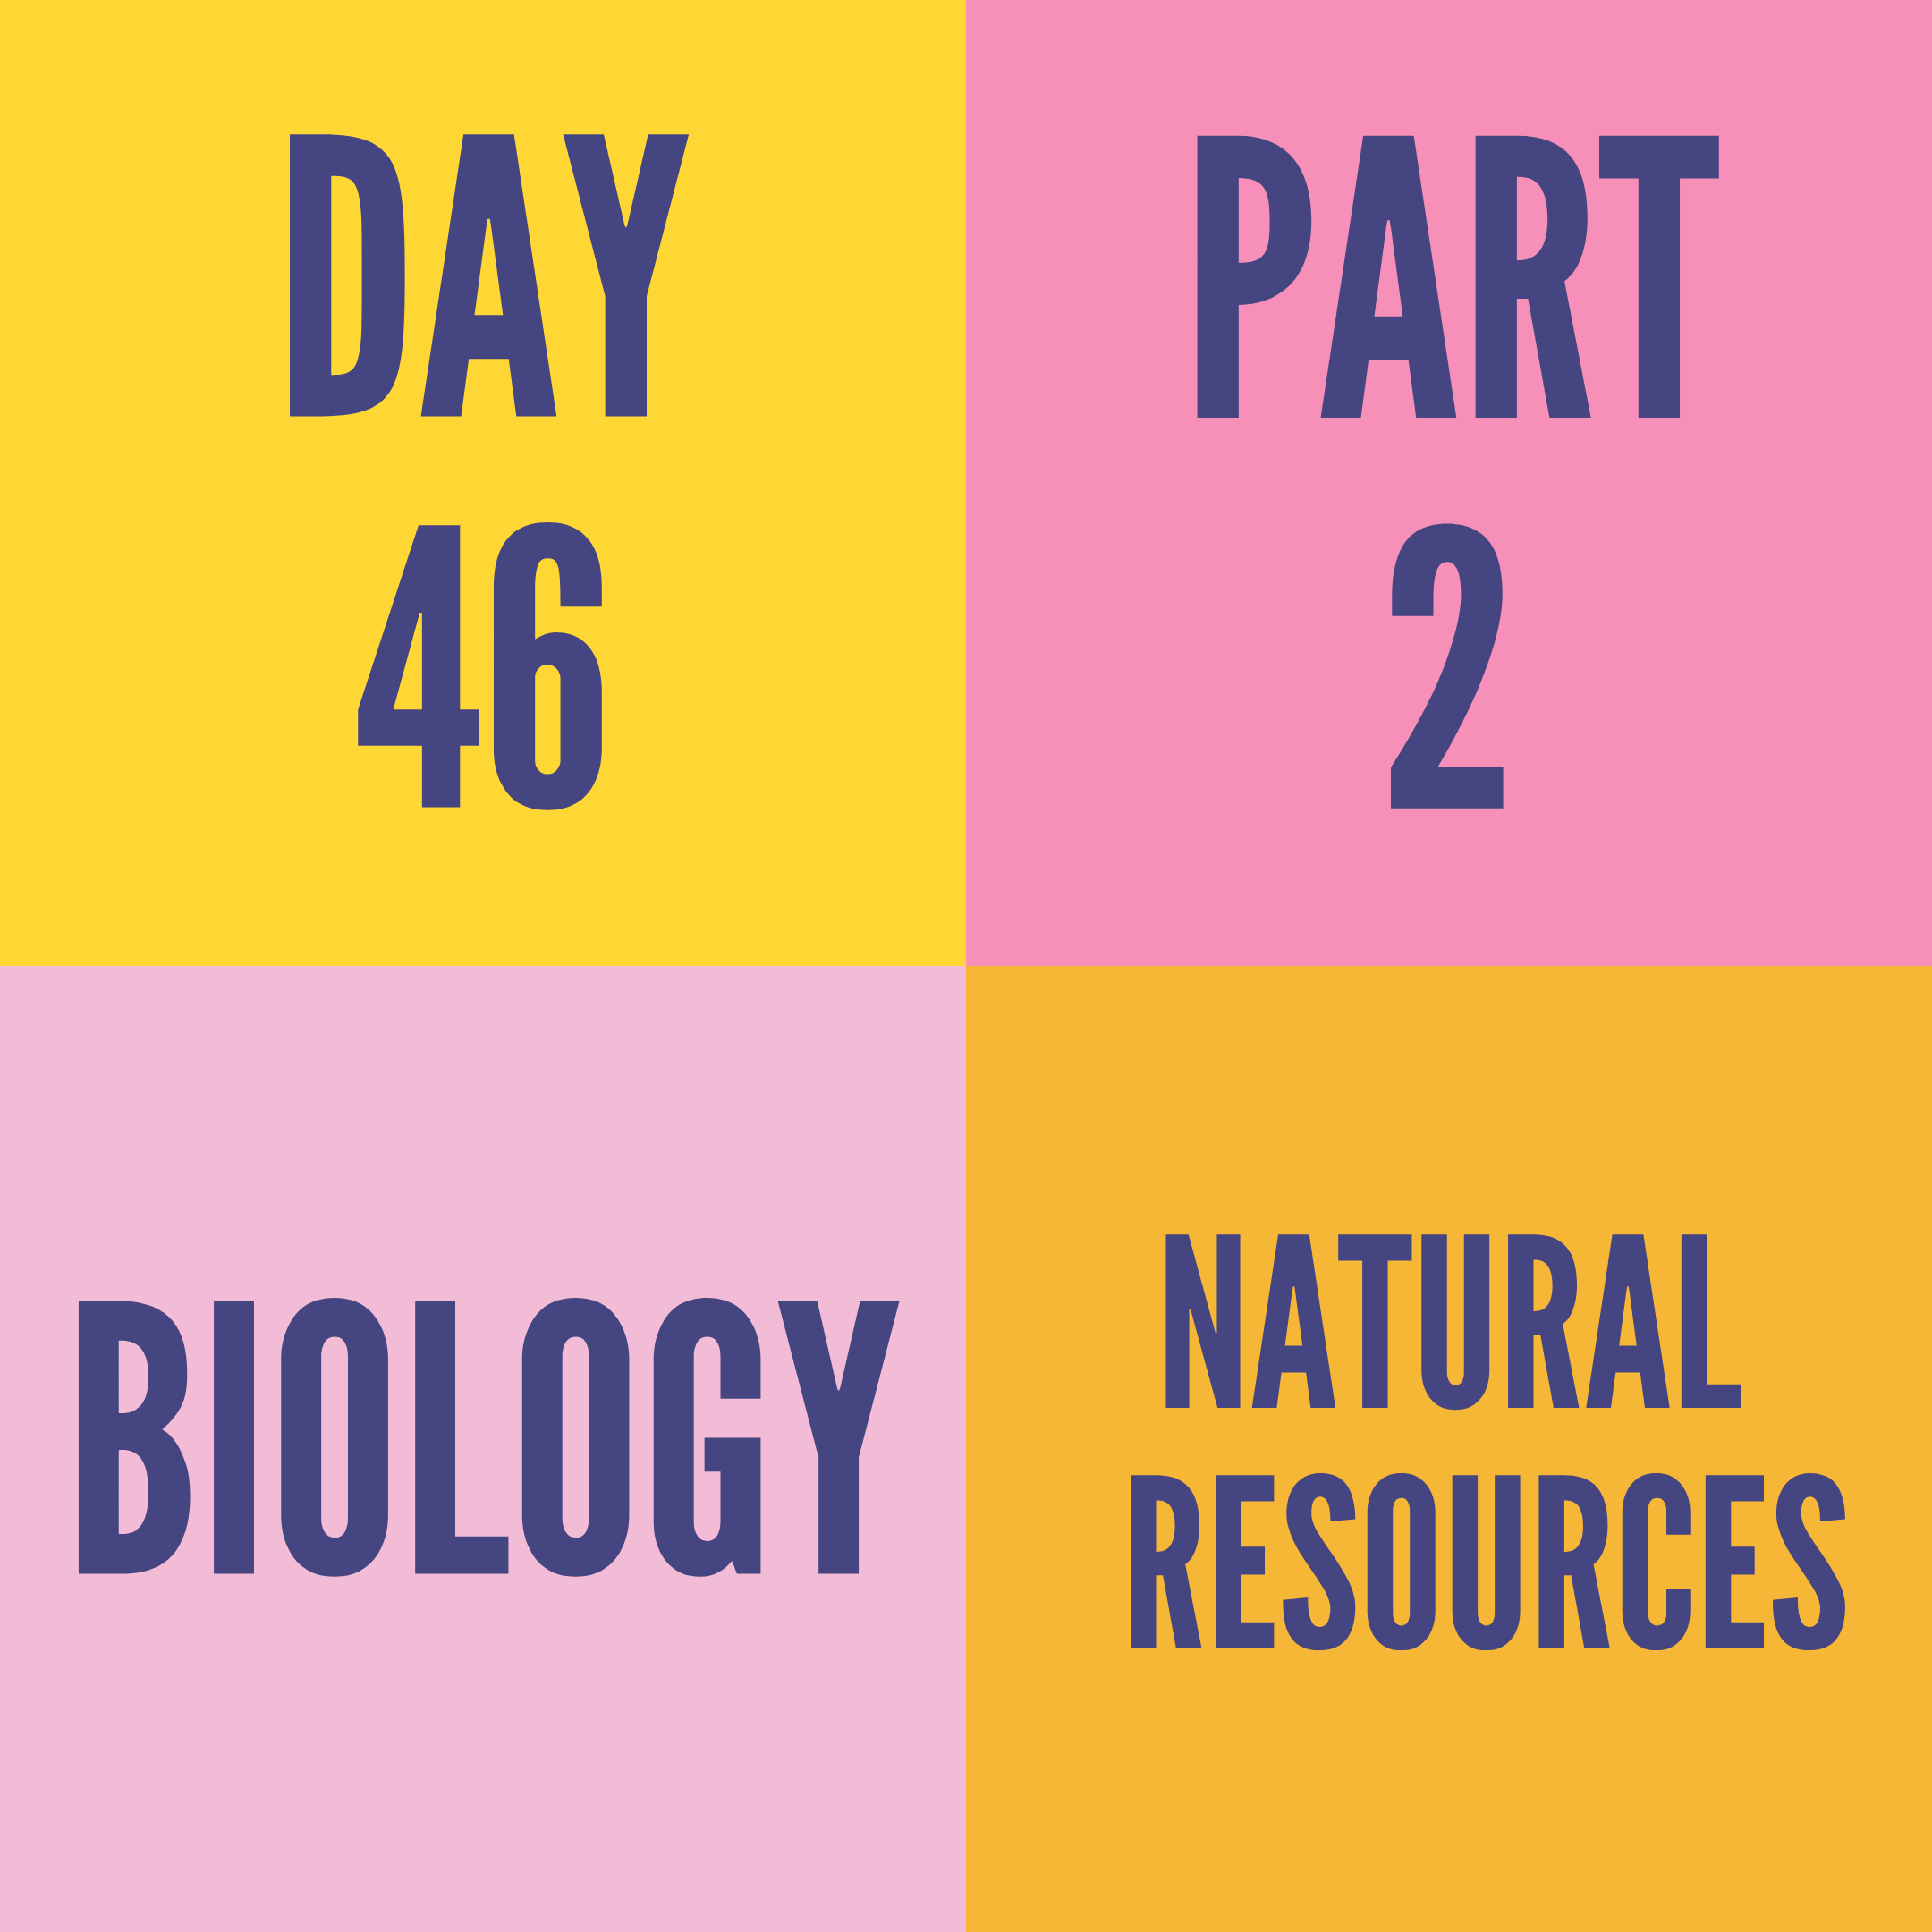 DAY-46 PART-2 NATURAL RESOURCES